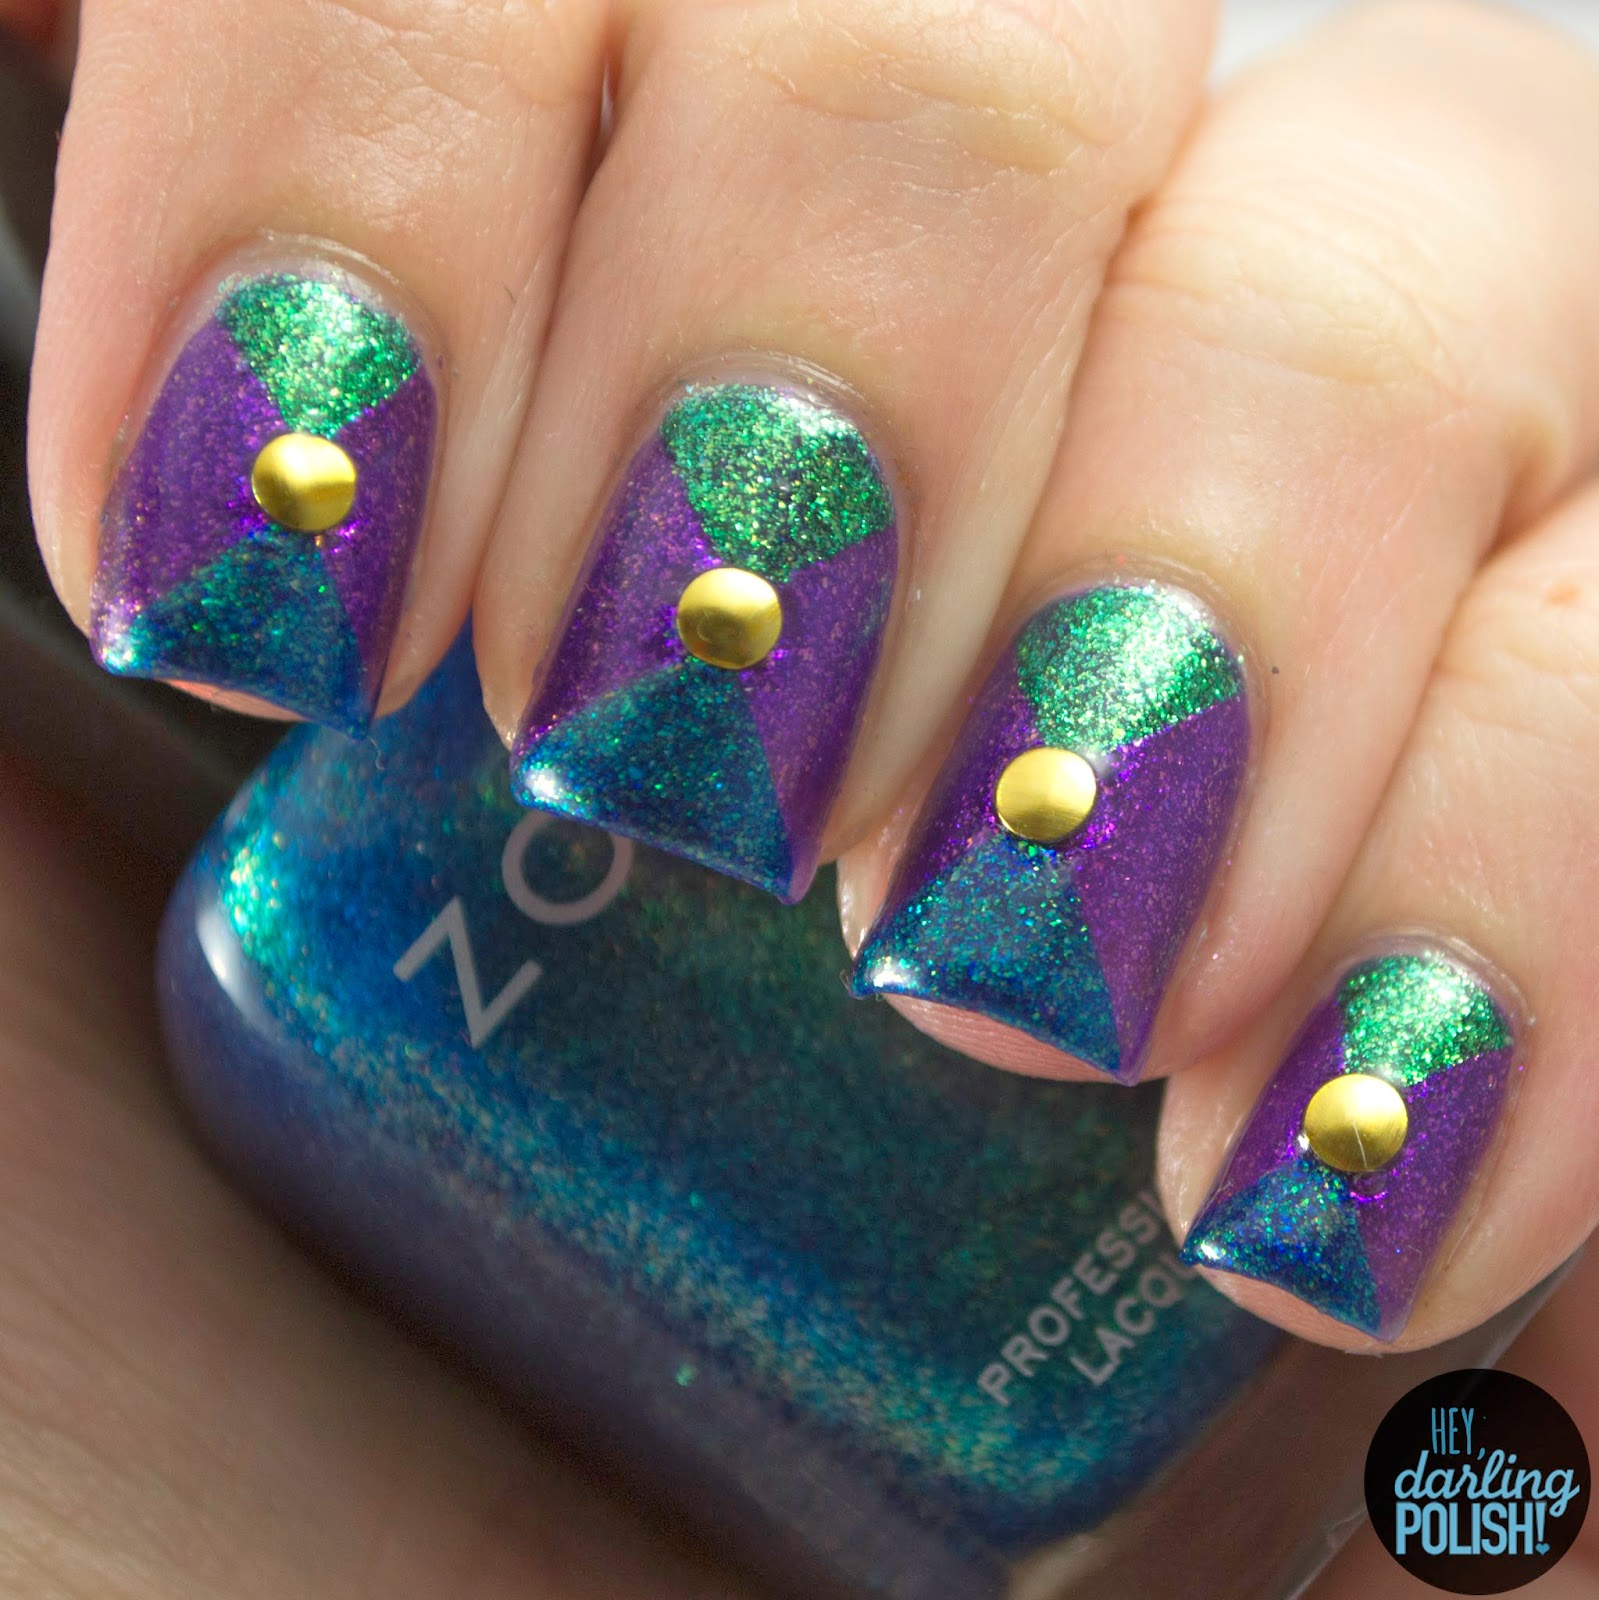 nails, nail art, nail polish, polish, purple, blue, green, tri polish challenge, zoya, triangles, hey darling polish